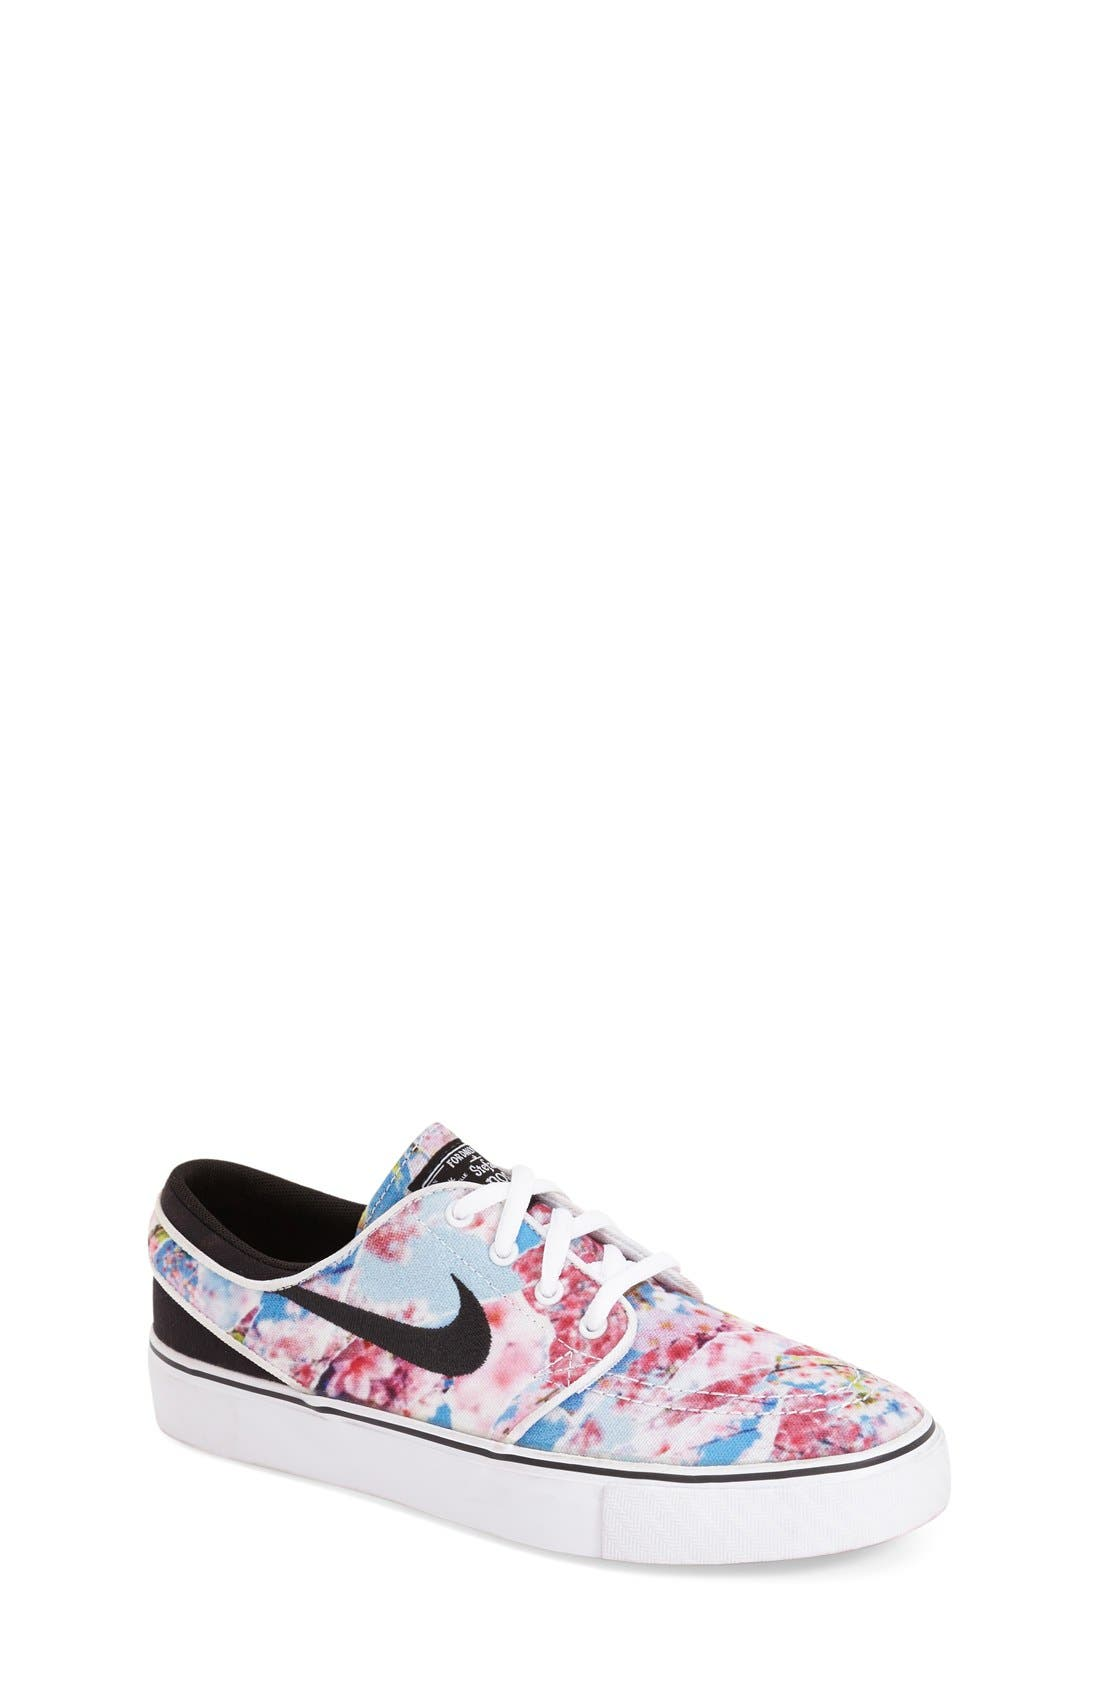 Alternate Image 1 Selected - Nike 'Stefan Janoski' Premium Canvas Sneaker (Big Kid)